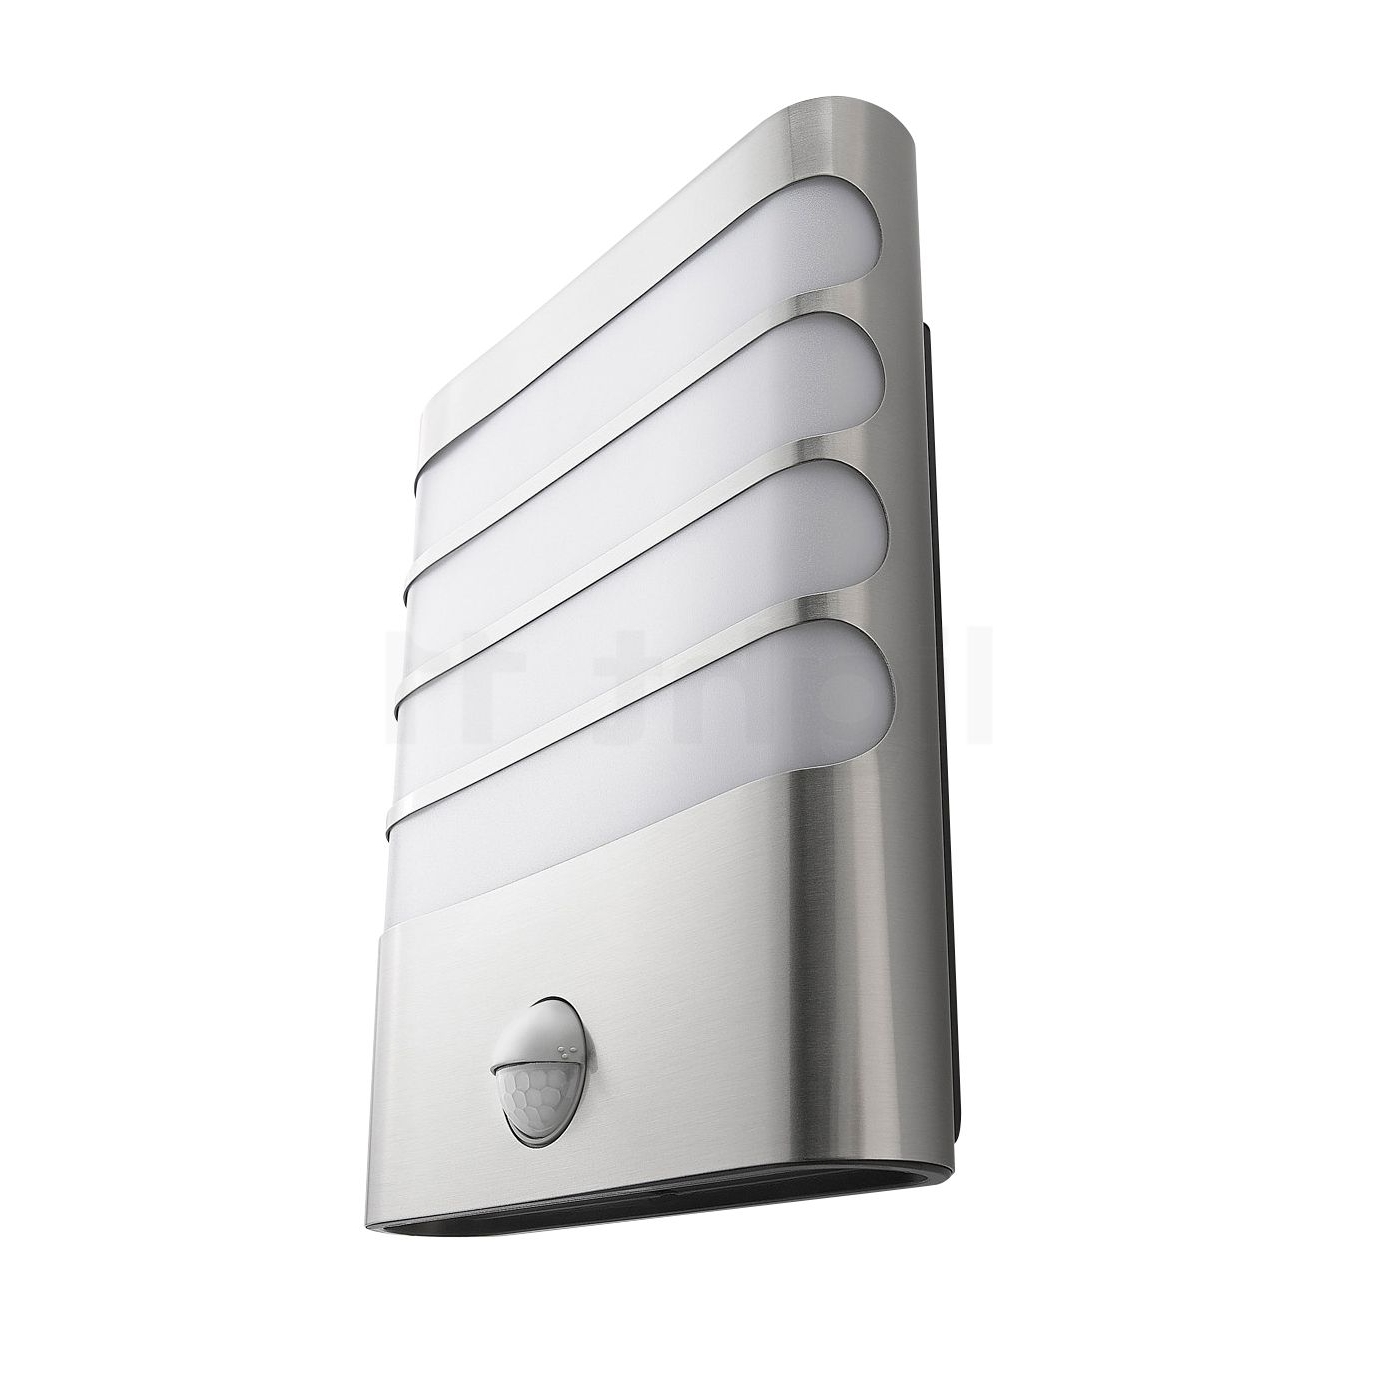 Philips Mygarden Raccoon 17274 Wall Light With Motion Detector Led Intended For Newest Led Outdoor Raccoon Wall Lights With Motion Detector (View 5 of 20)